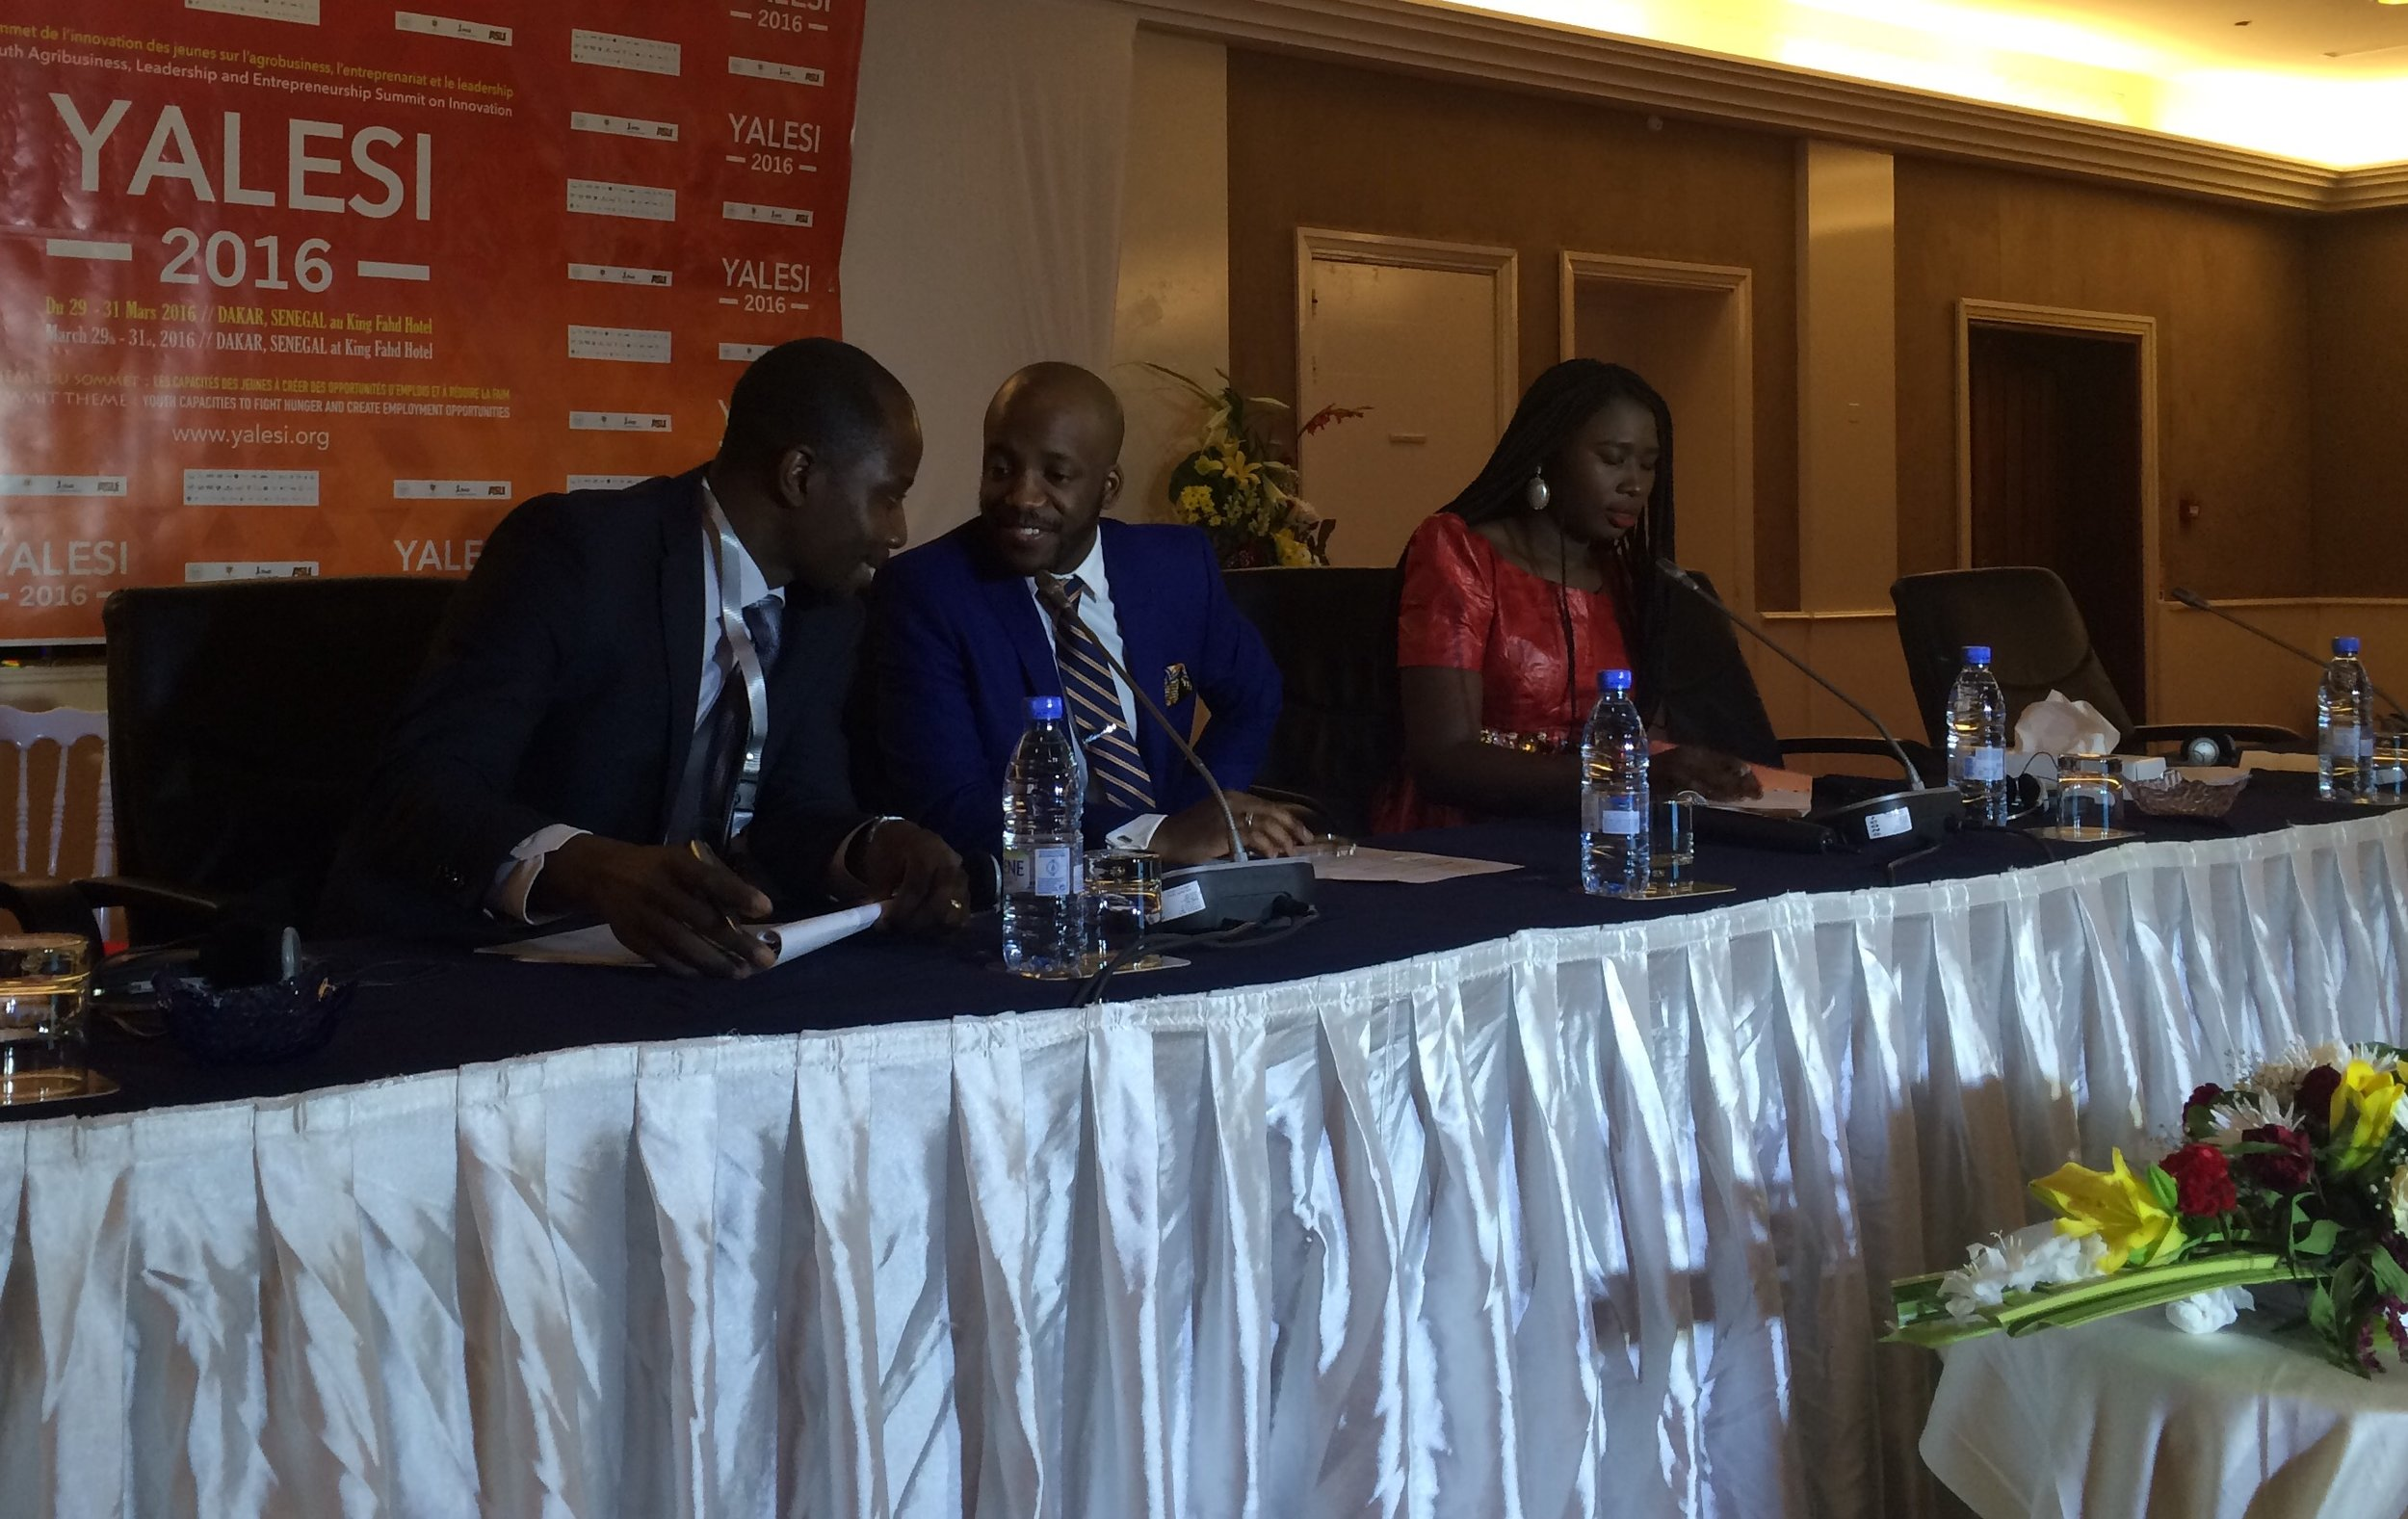 Zuwa speaking on a panel at the YALESI 2016 conference organized by the Senegalese Government and the Youth Innovation Network (GYIN) in Dakar, Senegal